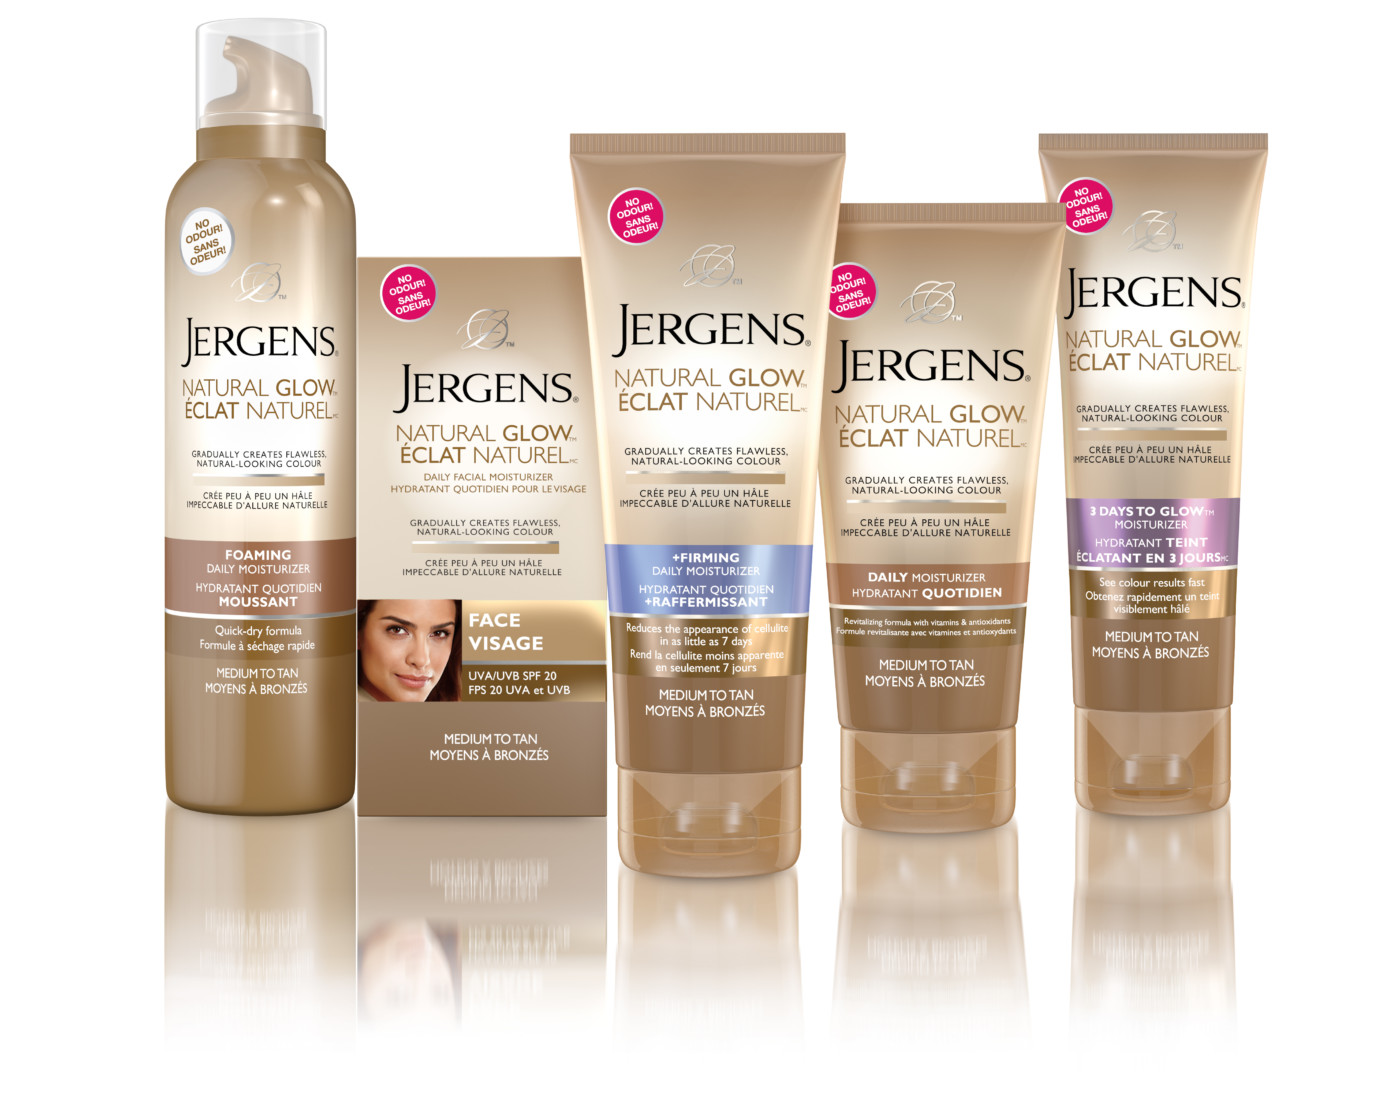 Jergens Natural Glow Foam On Face